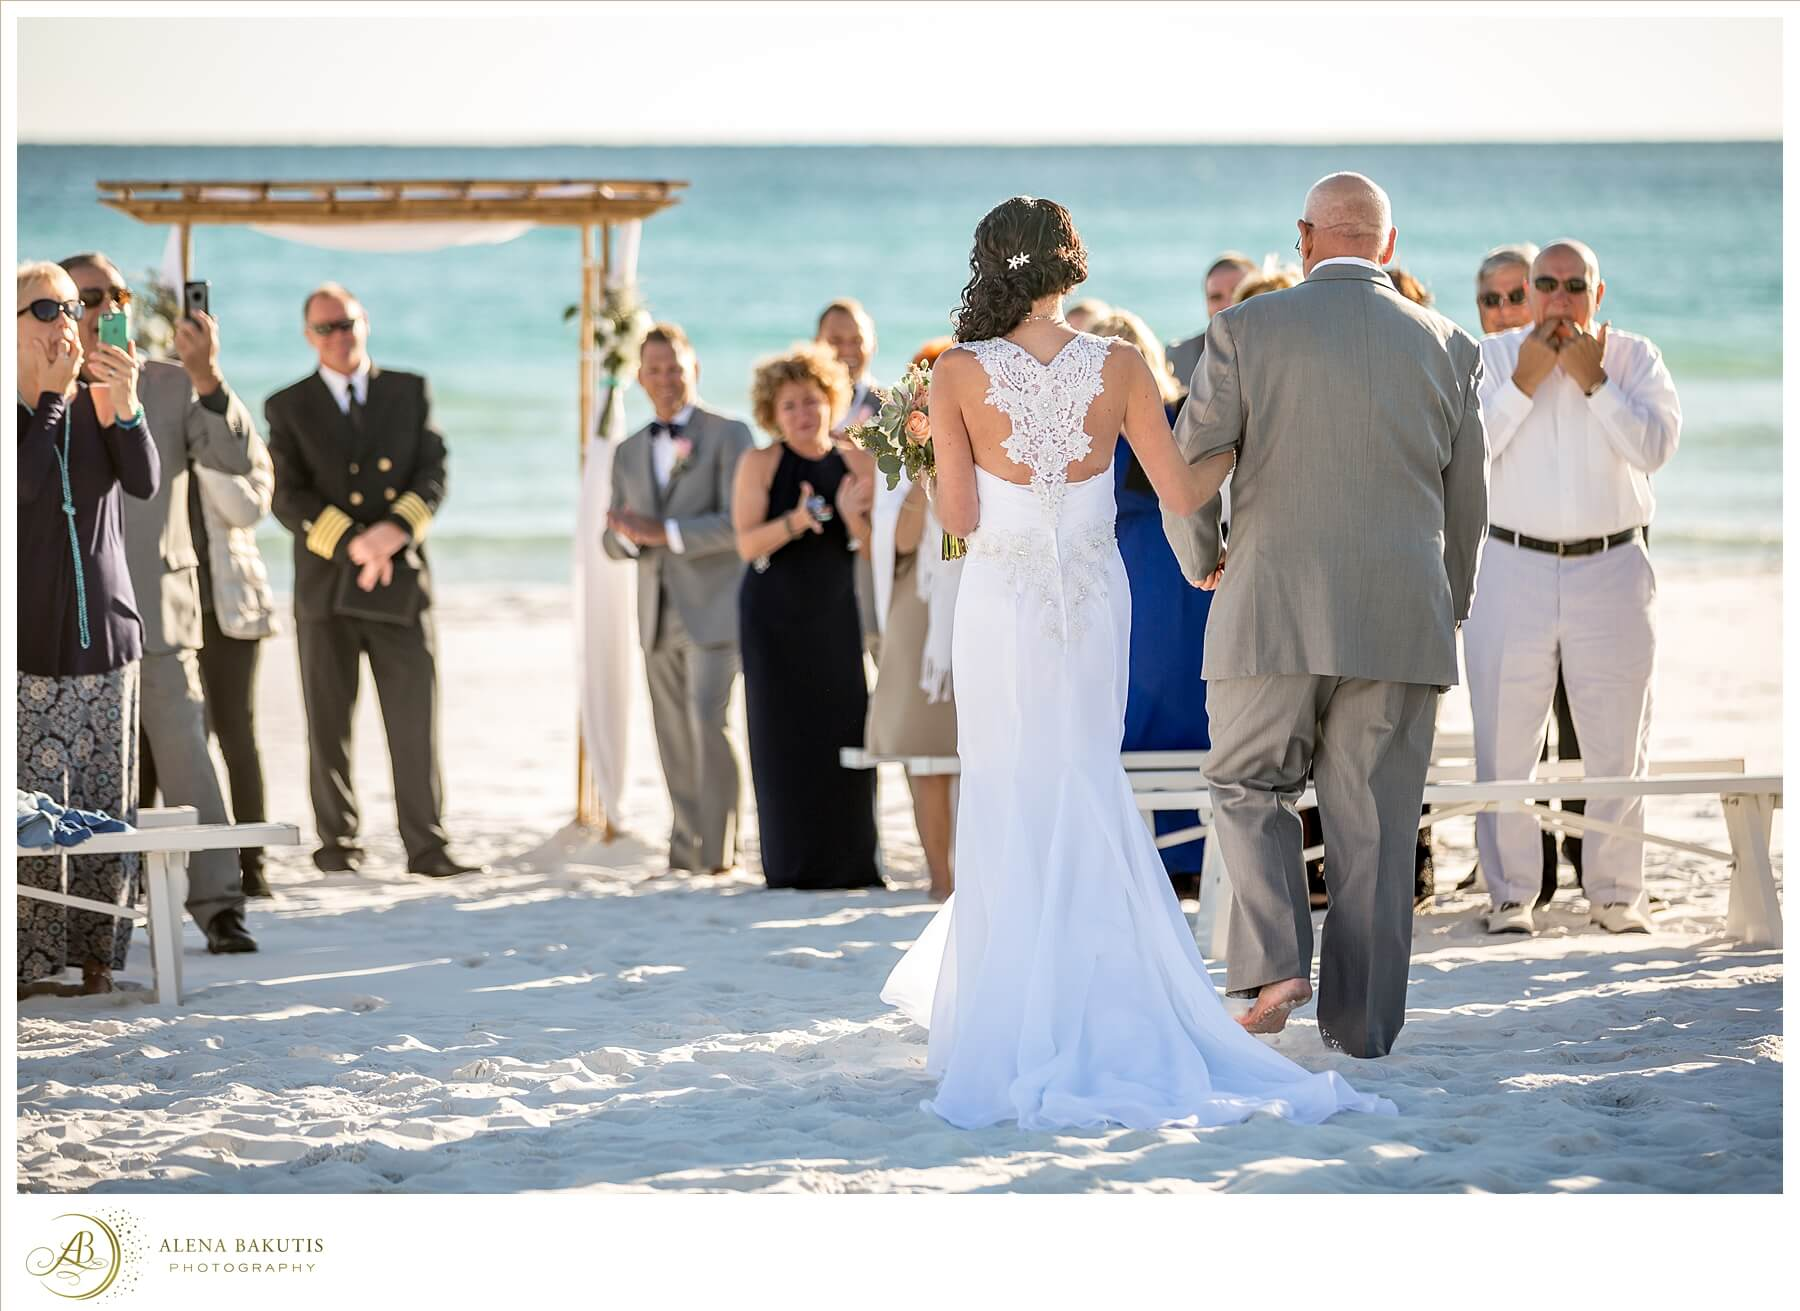 destin beach weddings Alena Bakutis Photography - Amber Brandon-345_WEB